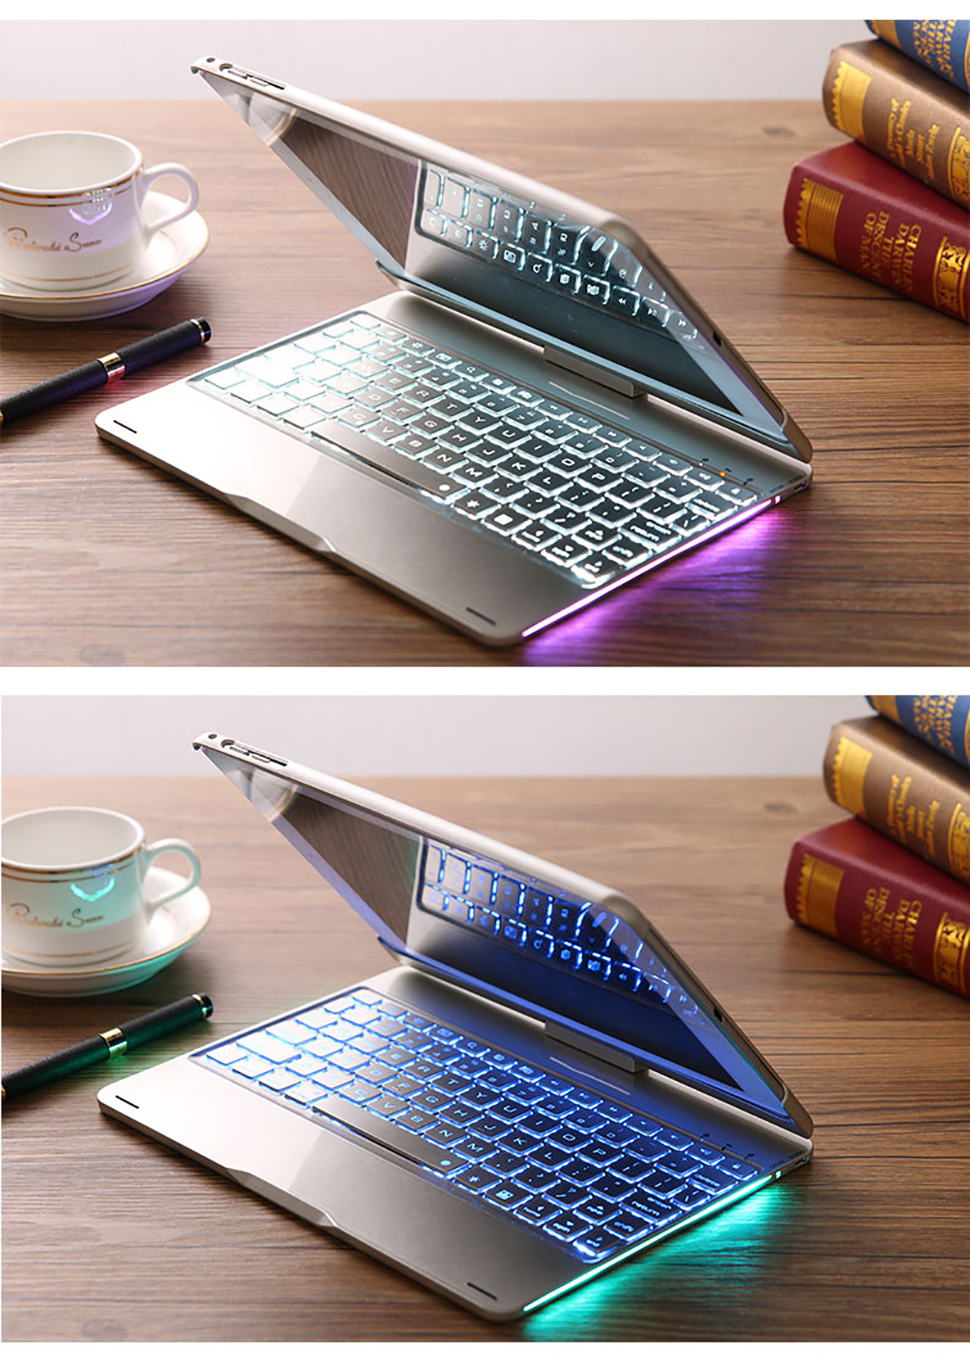 For iPad Pro 11 10.5 9.7 2018 2017 2016 Case Keyboard 360 Rotation 7 Color Backlit Bluetooth Keyboard Cover For iPad Pro Funda (10)